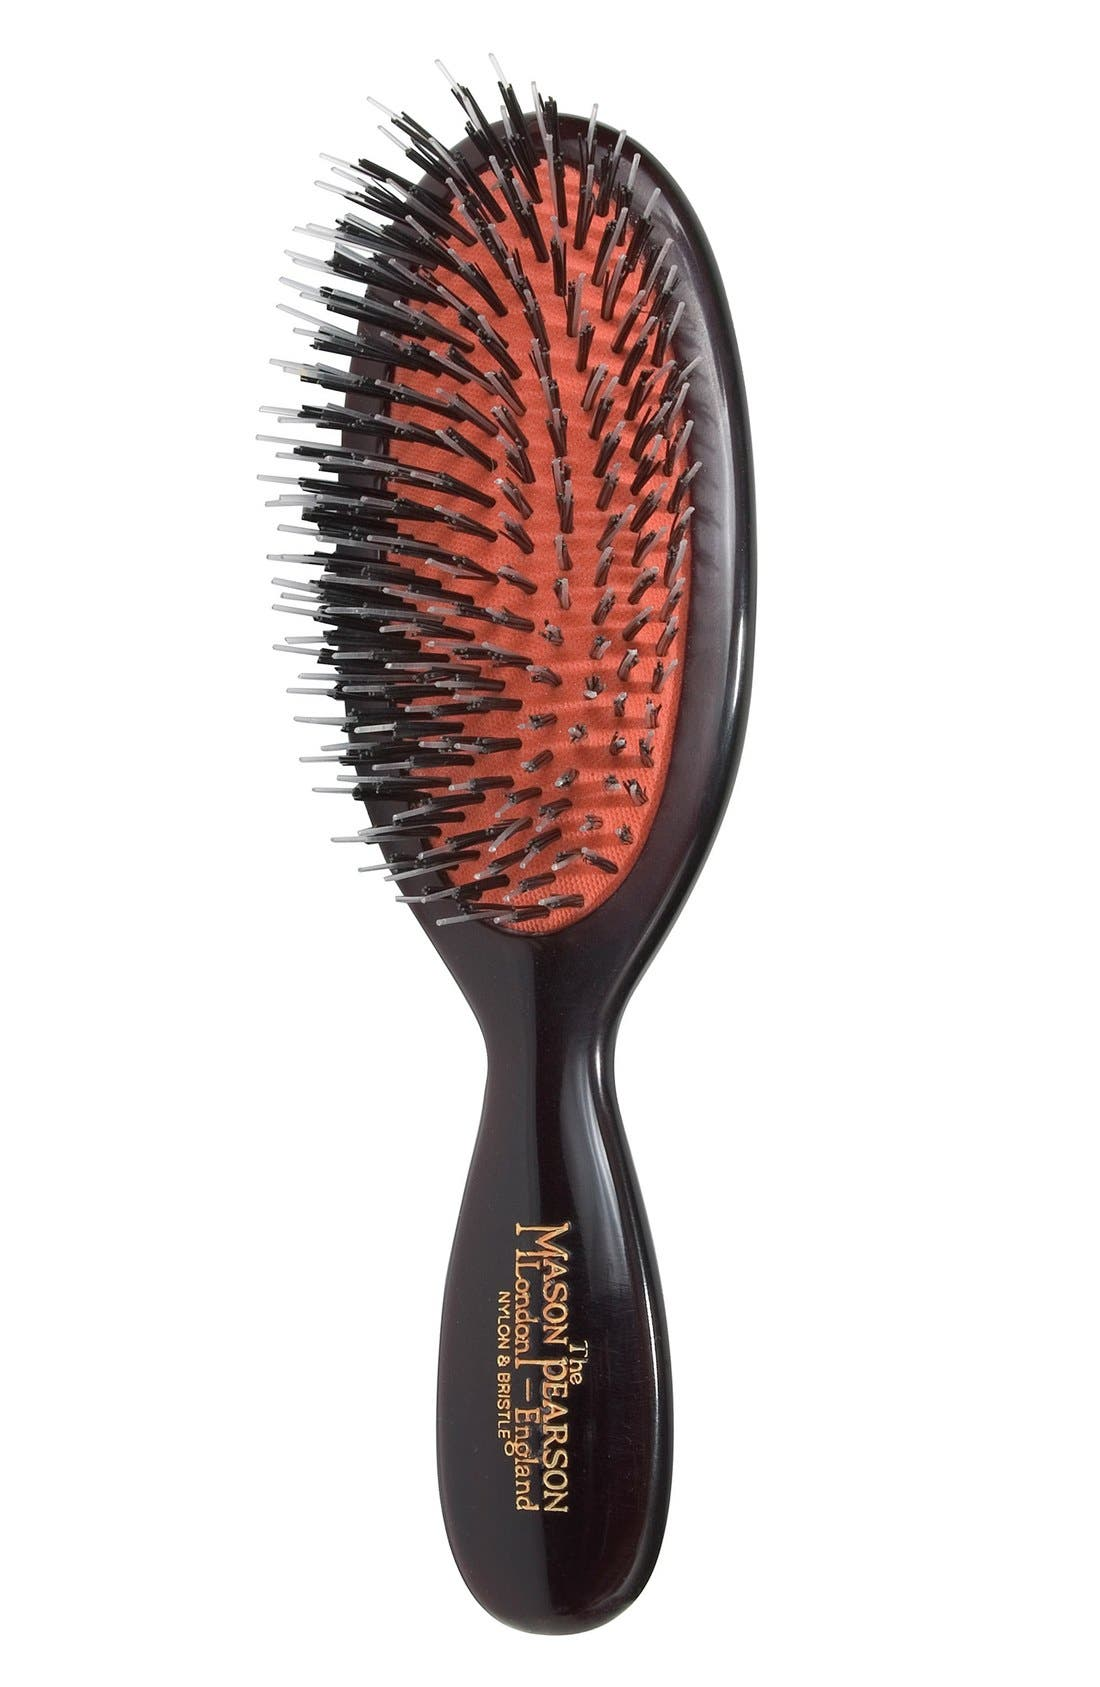 Mason Pearson Popular Mixture Nylon & Boar Bristle Brush for Long Coarse to Normal Hair